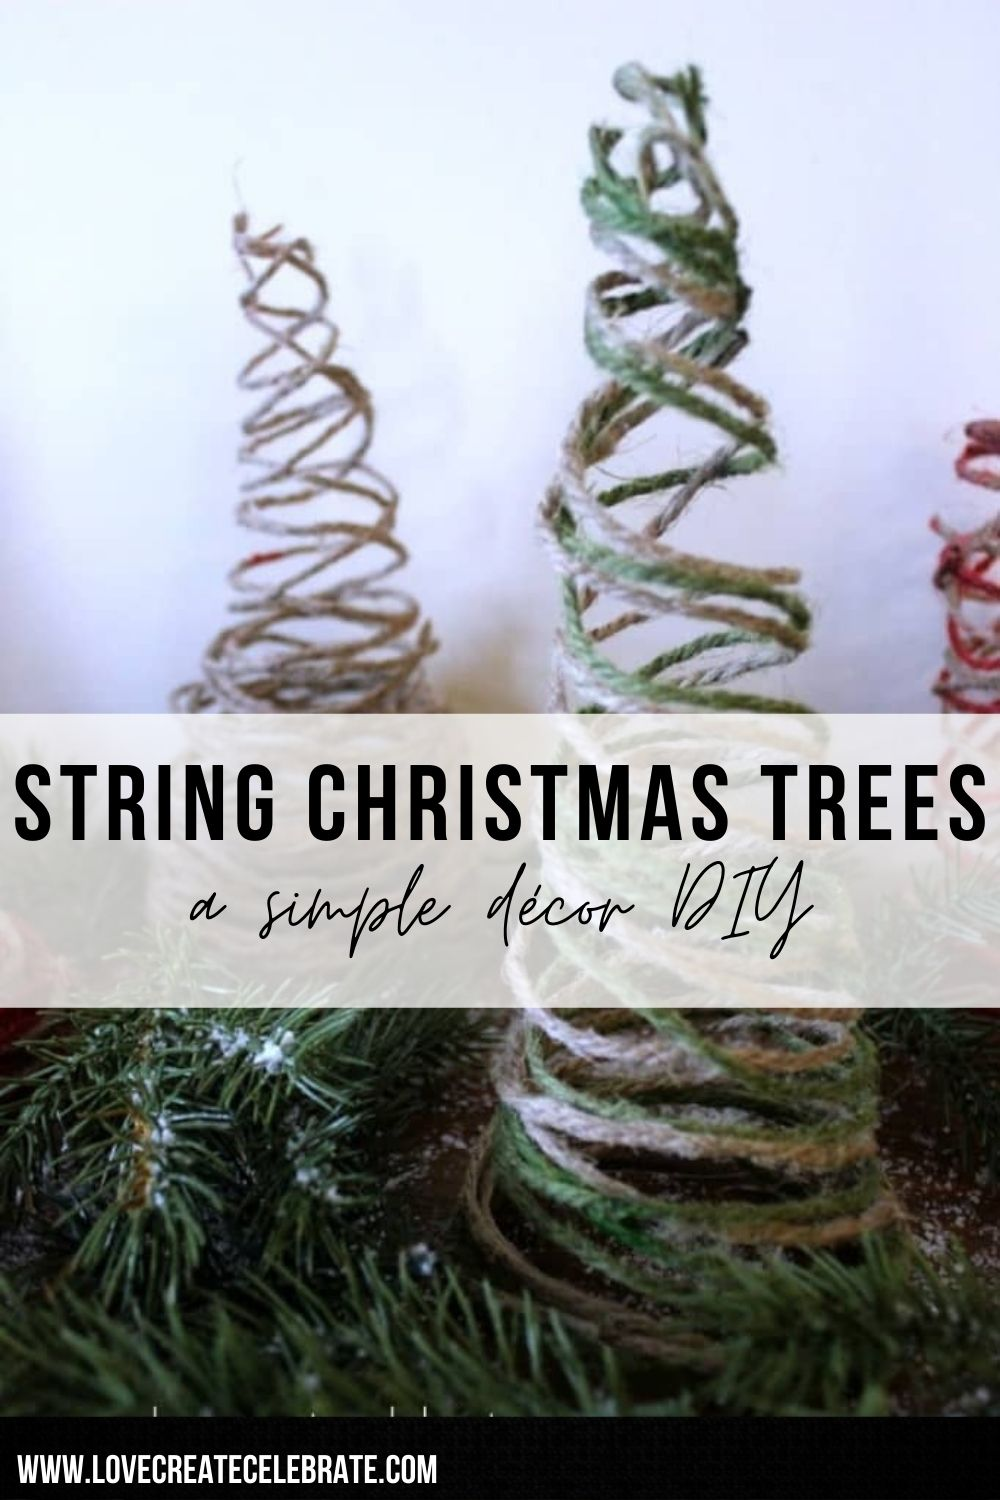 String Christmas trees image with text overlay